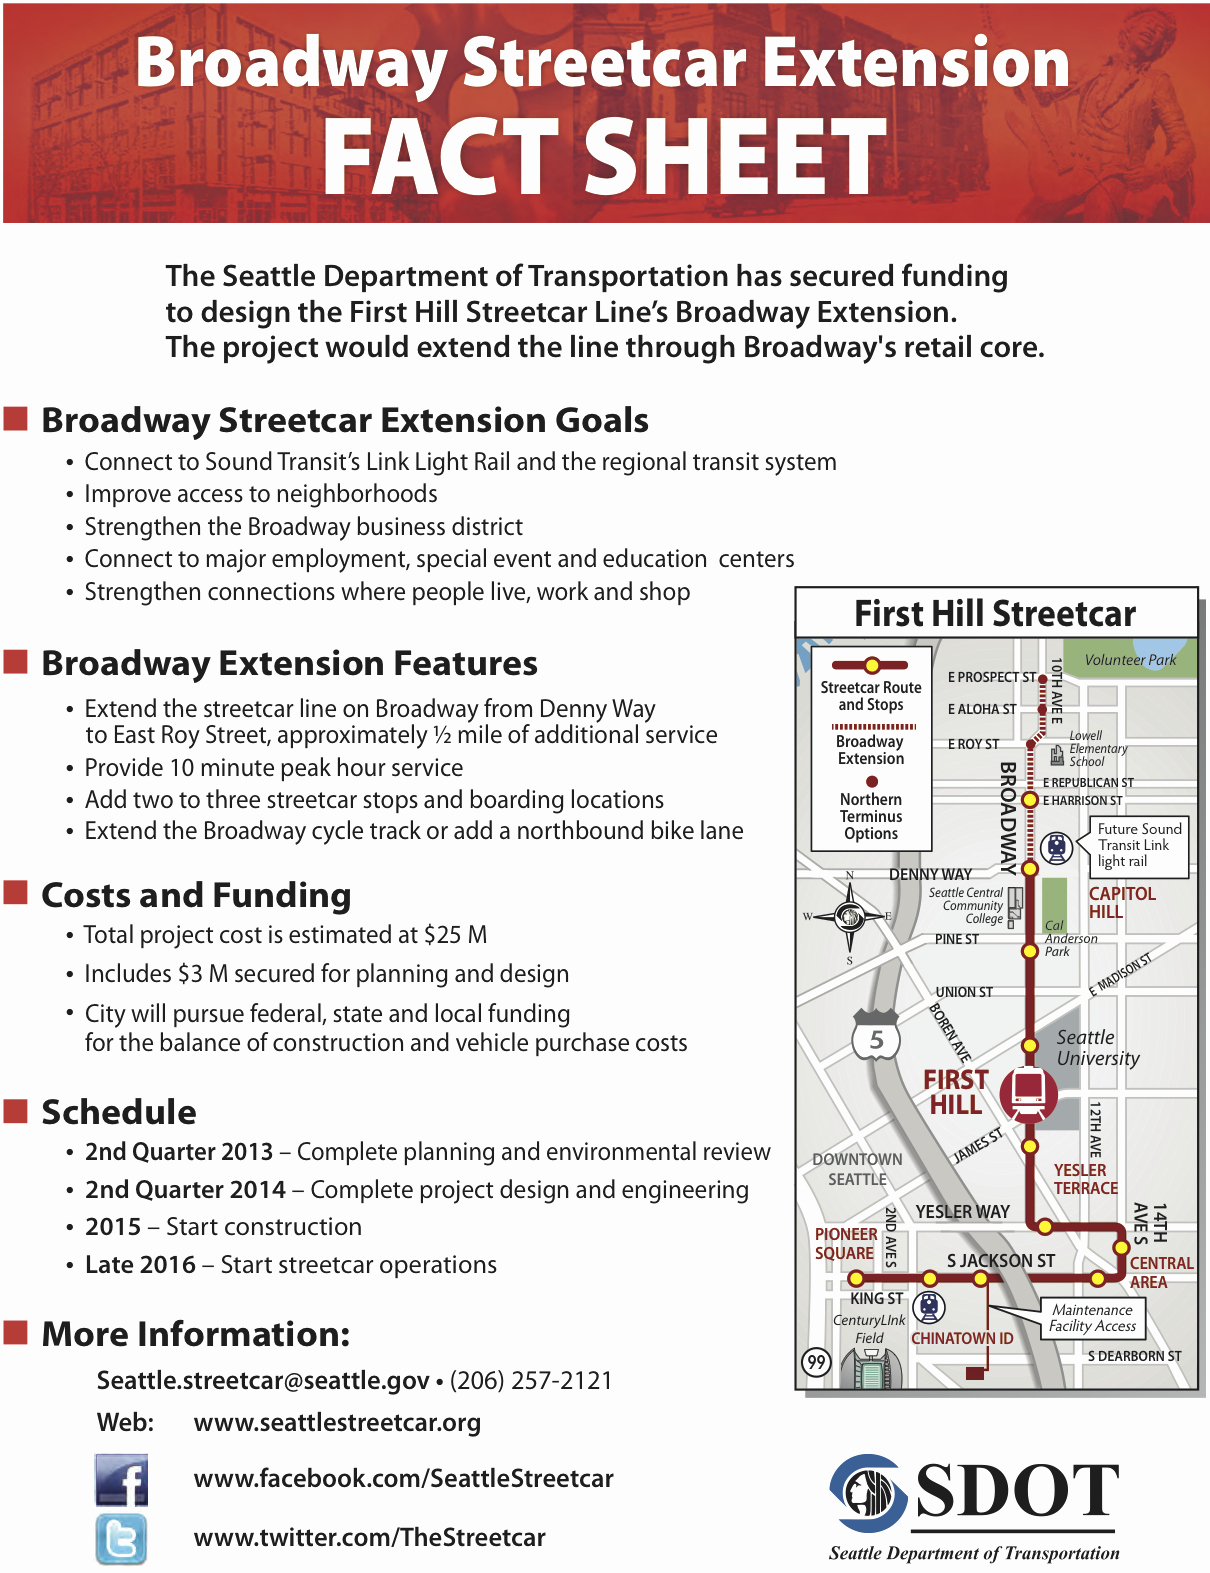 Home Fact Sheet Template Luxury Broadway Streetcar Extention Will Include Cycle Track